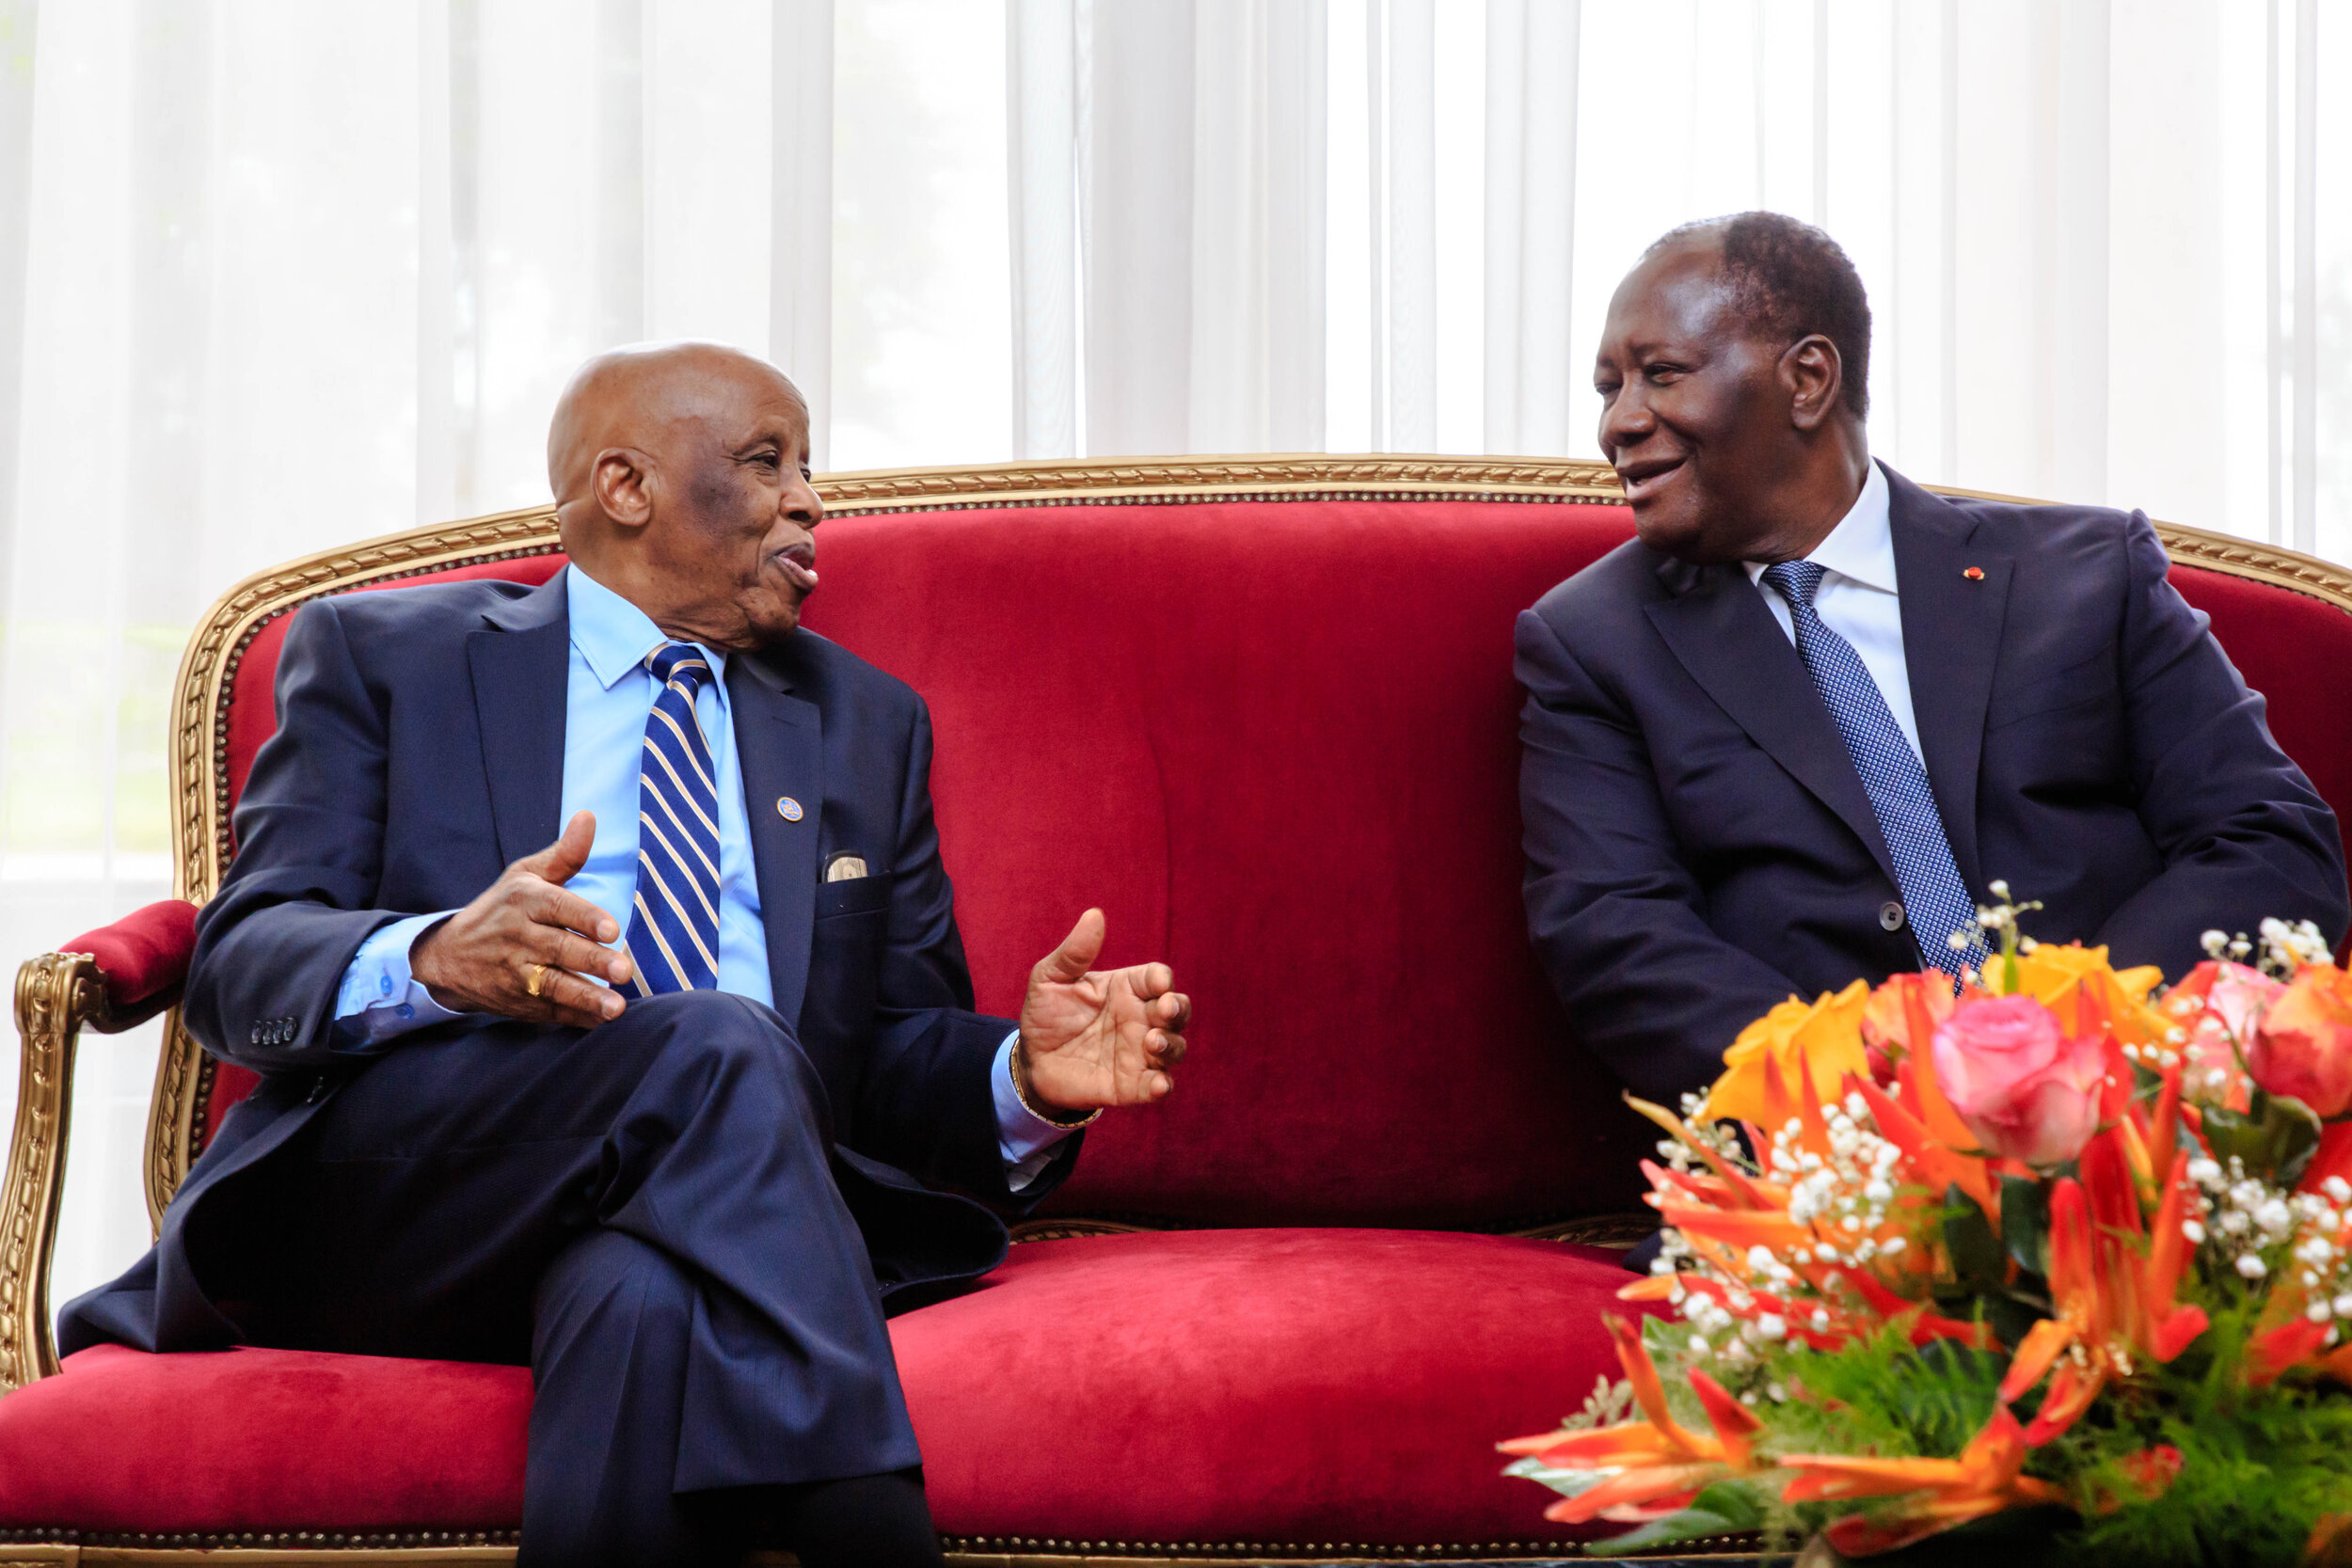 The former President of Botswana and Champion, His Excellency Festus Mogae, meeting with the President of the Republic of Côte d'Ivoire His Excellency Alassane Ouattara.